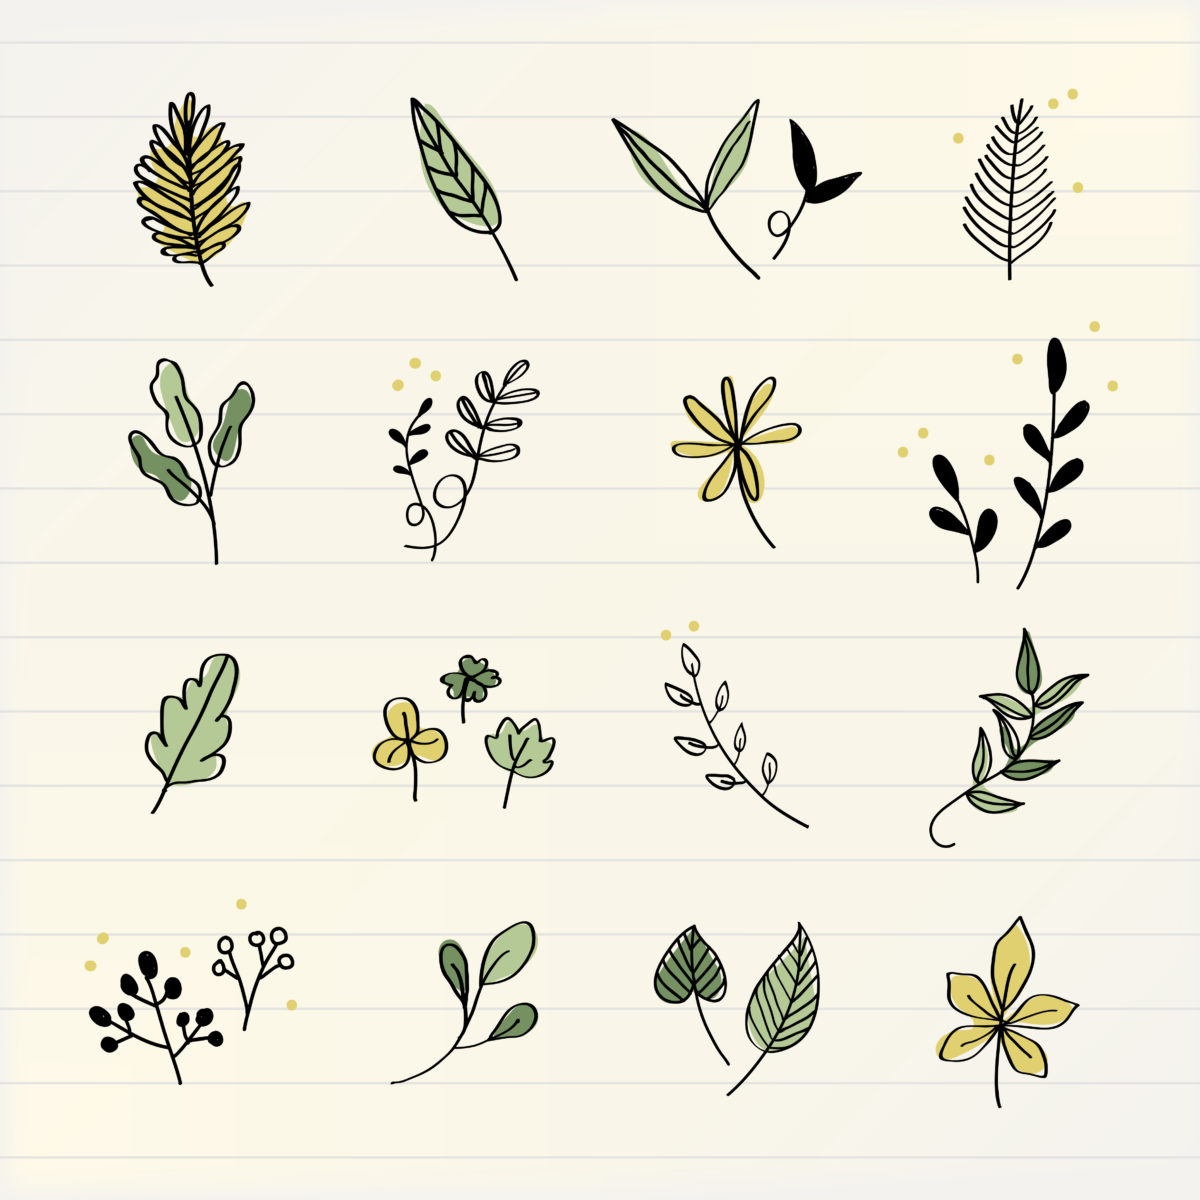 simple doodles of flowers and leaves on a lined notebook paper background.